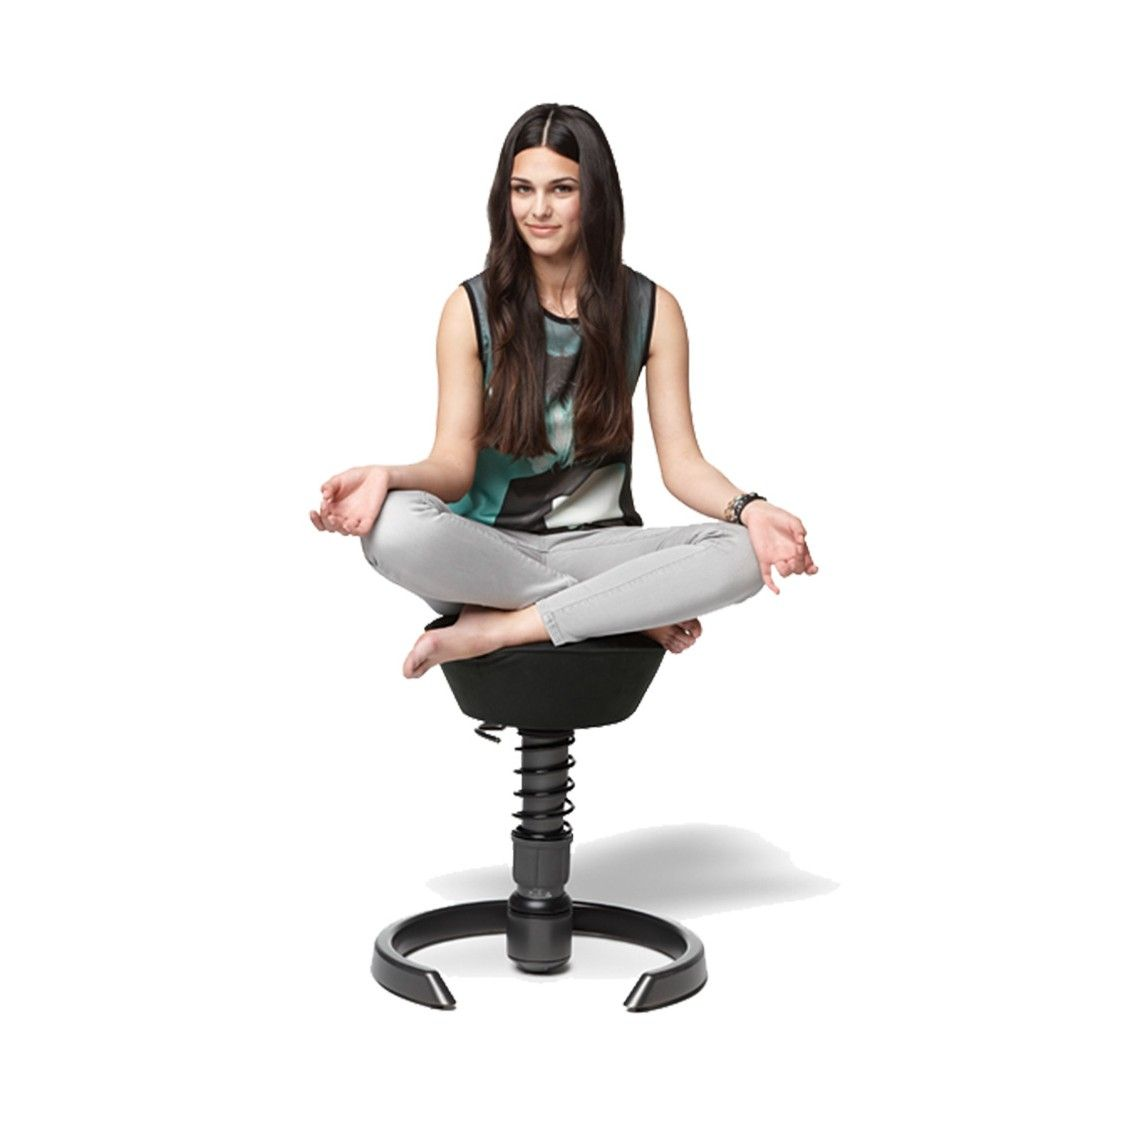 Ergonomischer Bürostuhl Swopper Swopper Air By Aeris In 2019 Sit Ergonomic Office